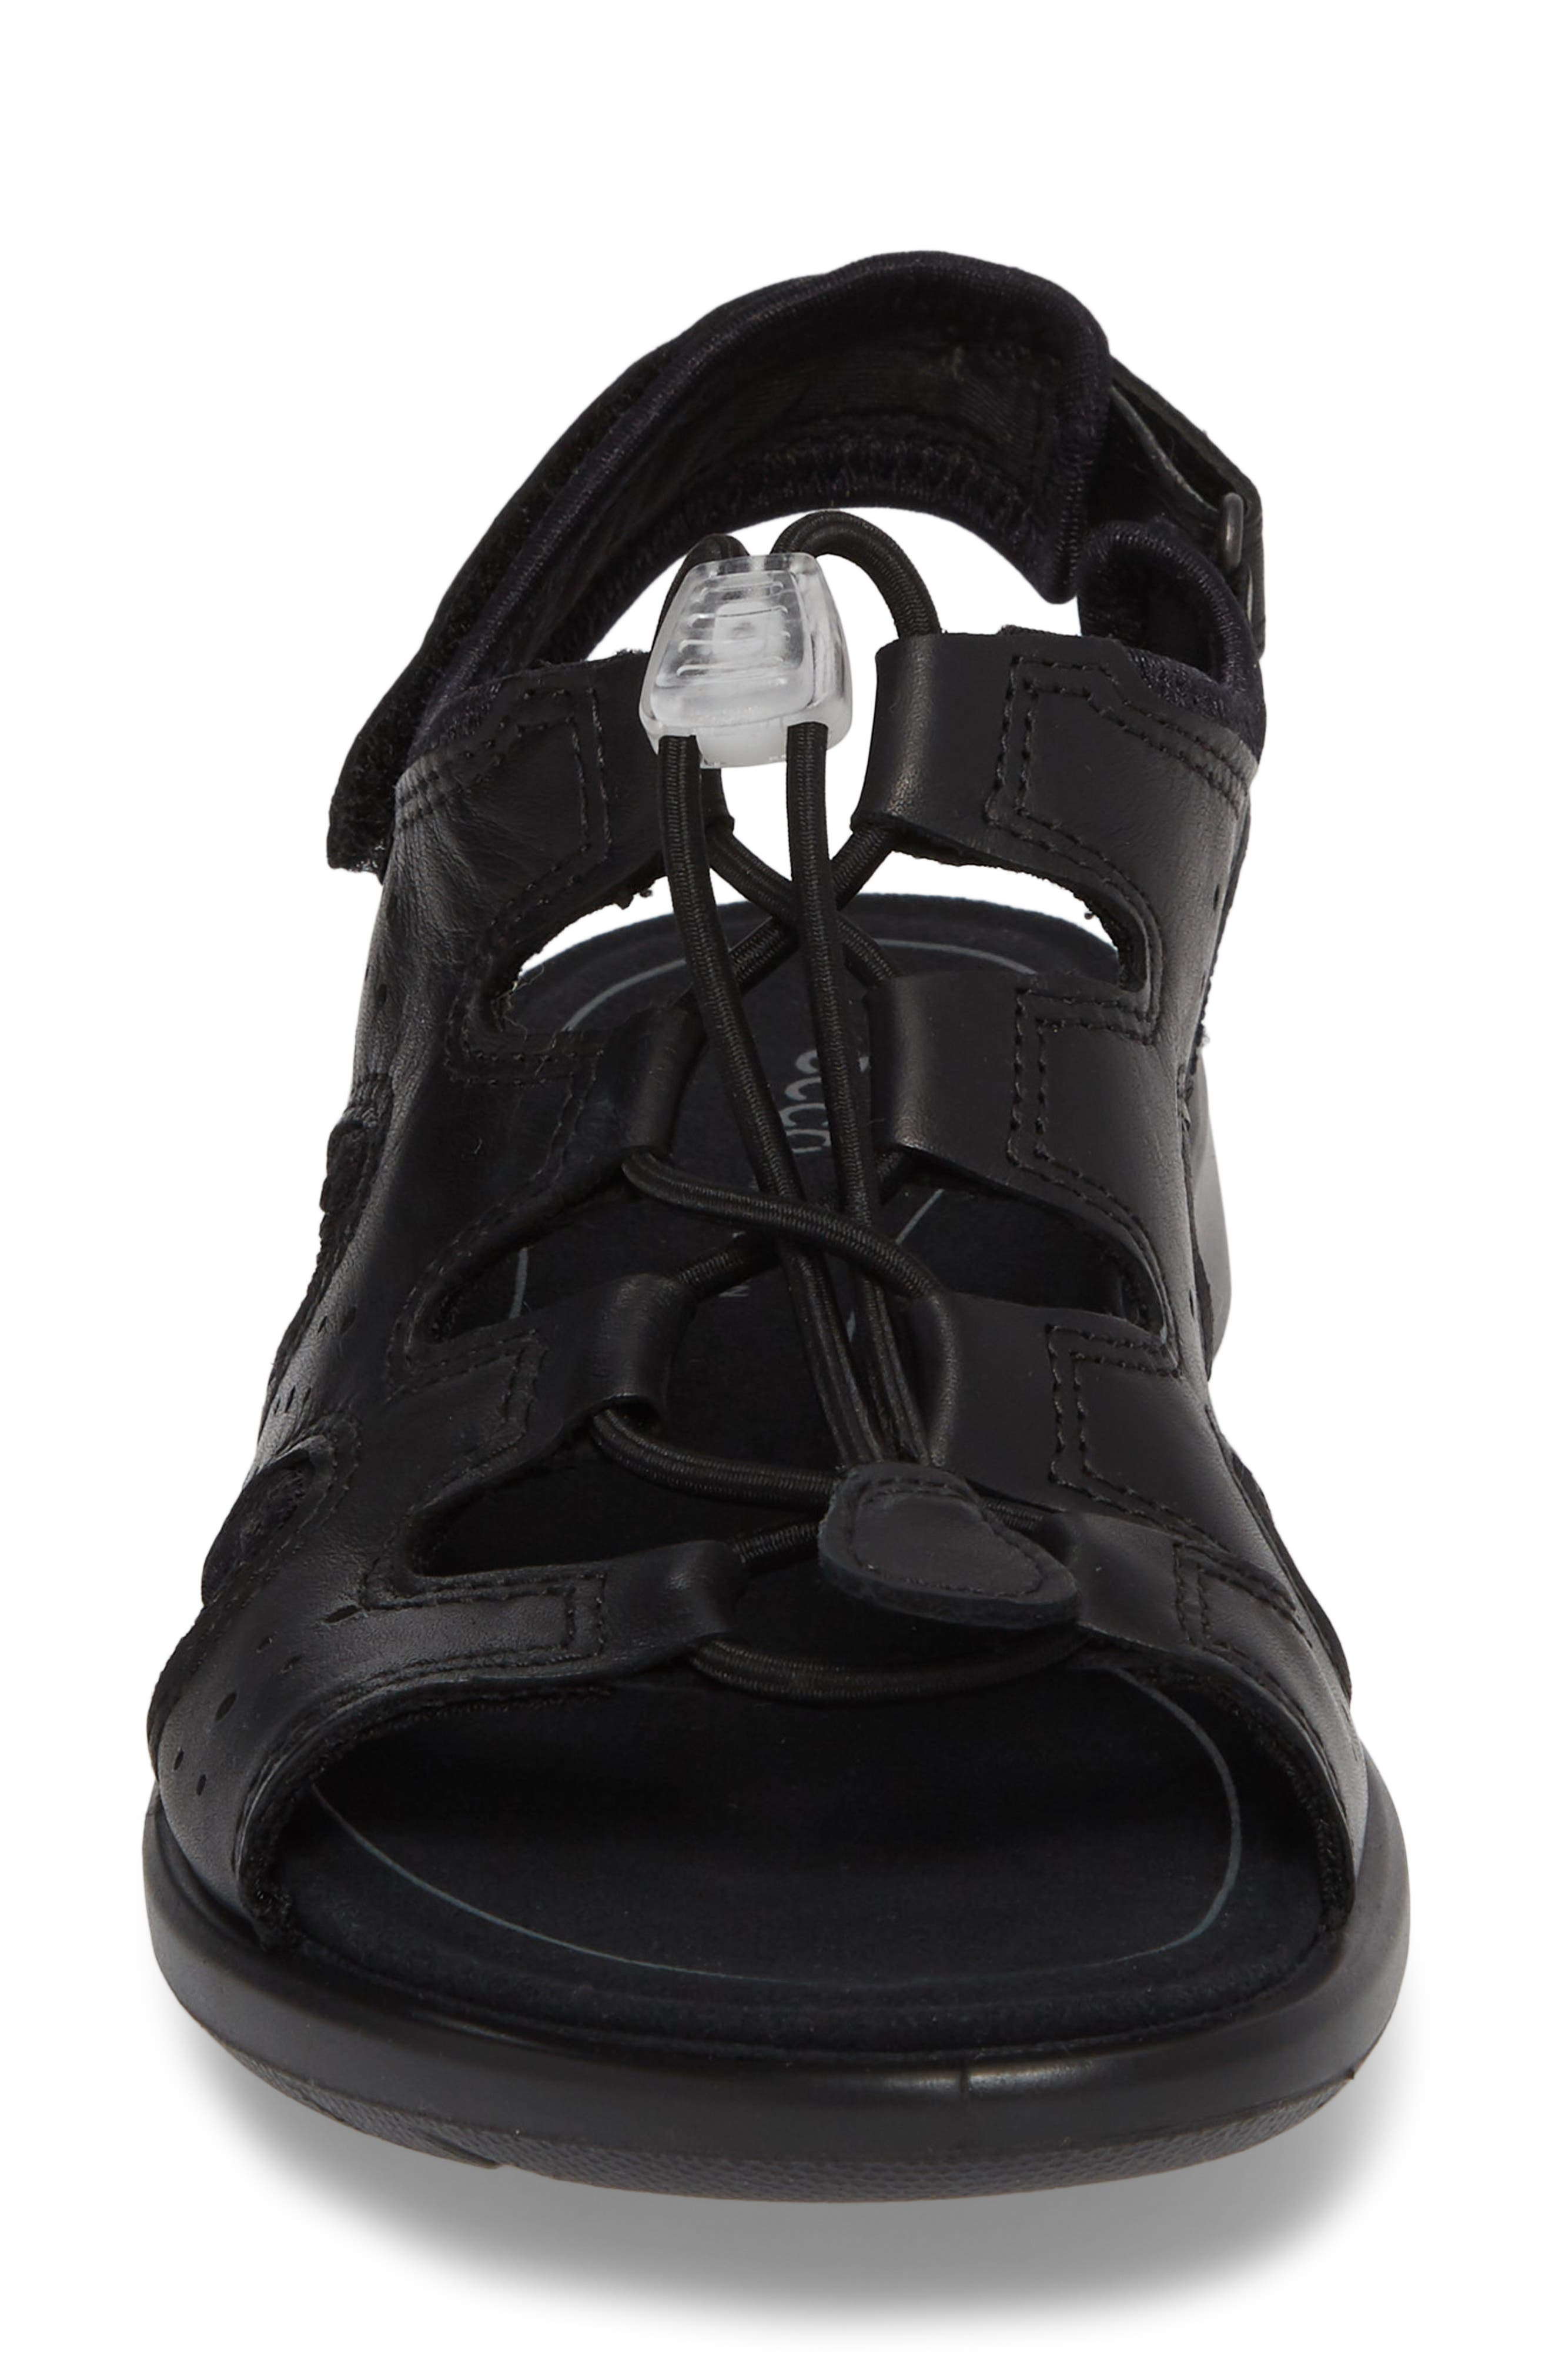 Bluma Toggle Sandal,                             Alternate thumbnail 4, color,                             001